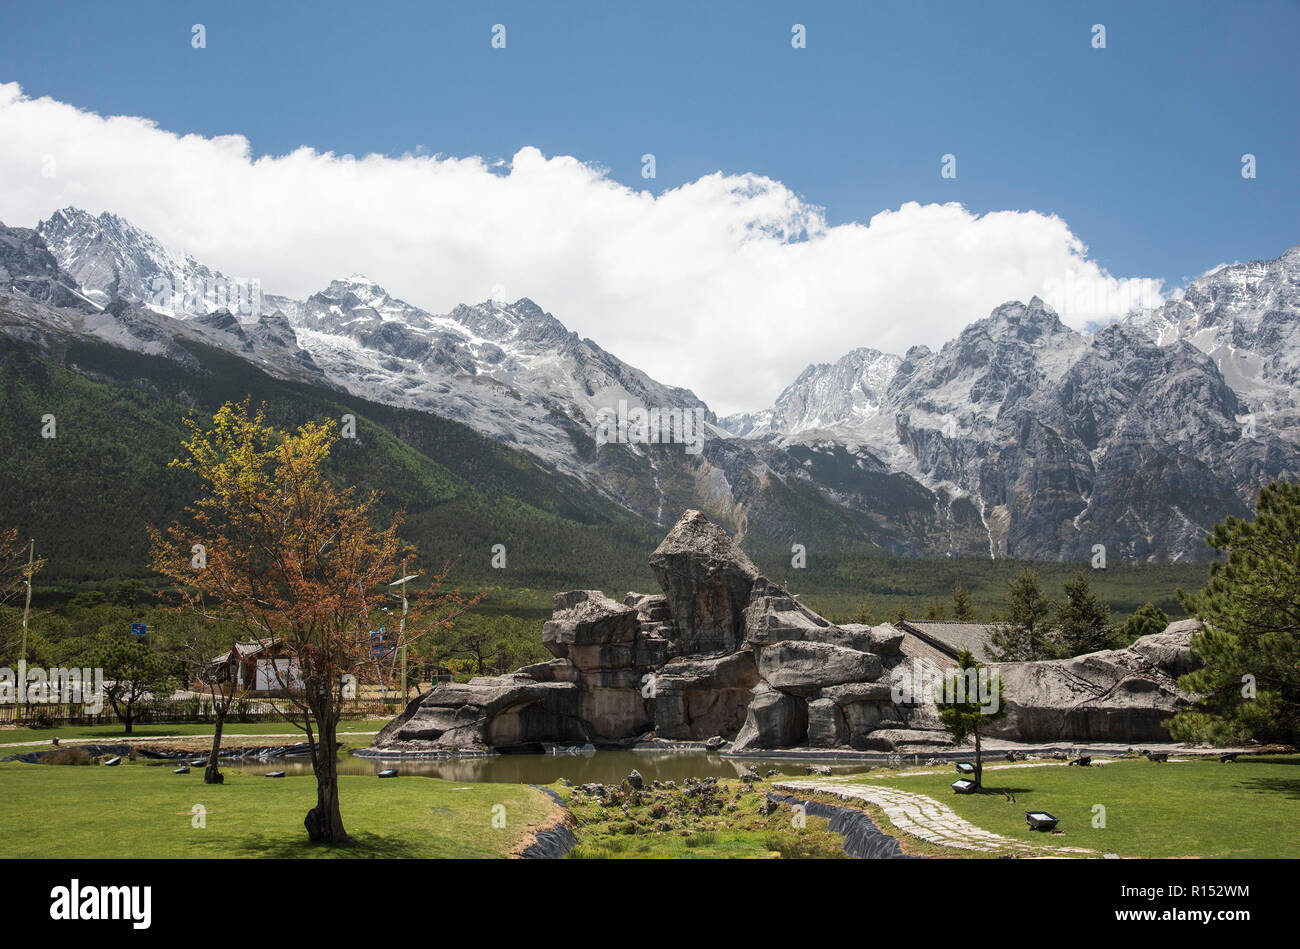 Snow covered Jade Dragon Mountains in the Yunnan province of China. Stock Photo